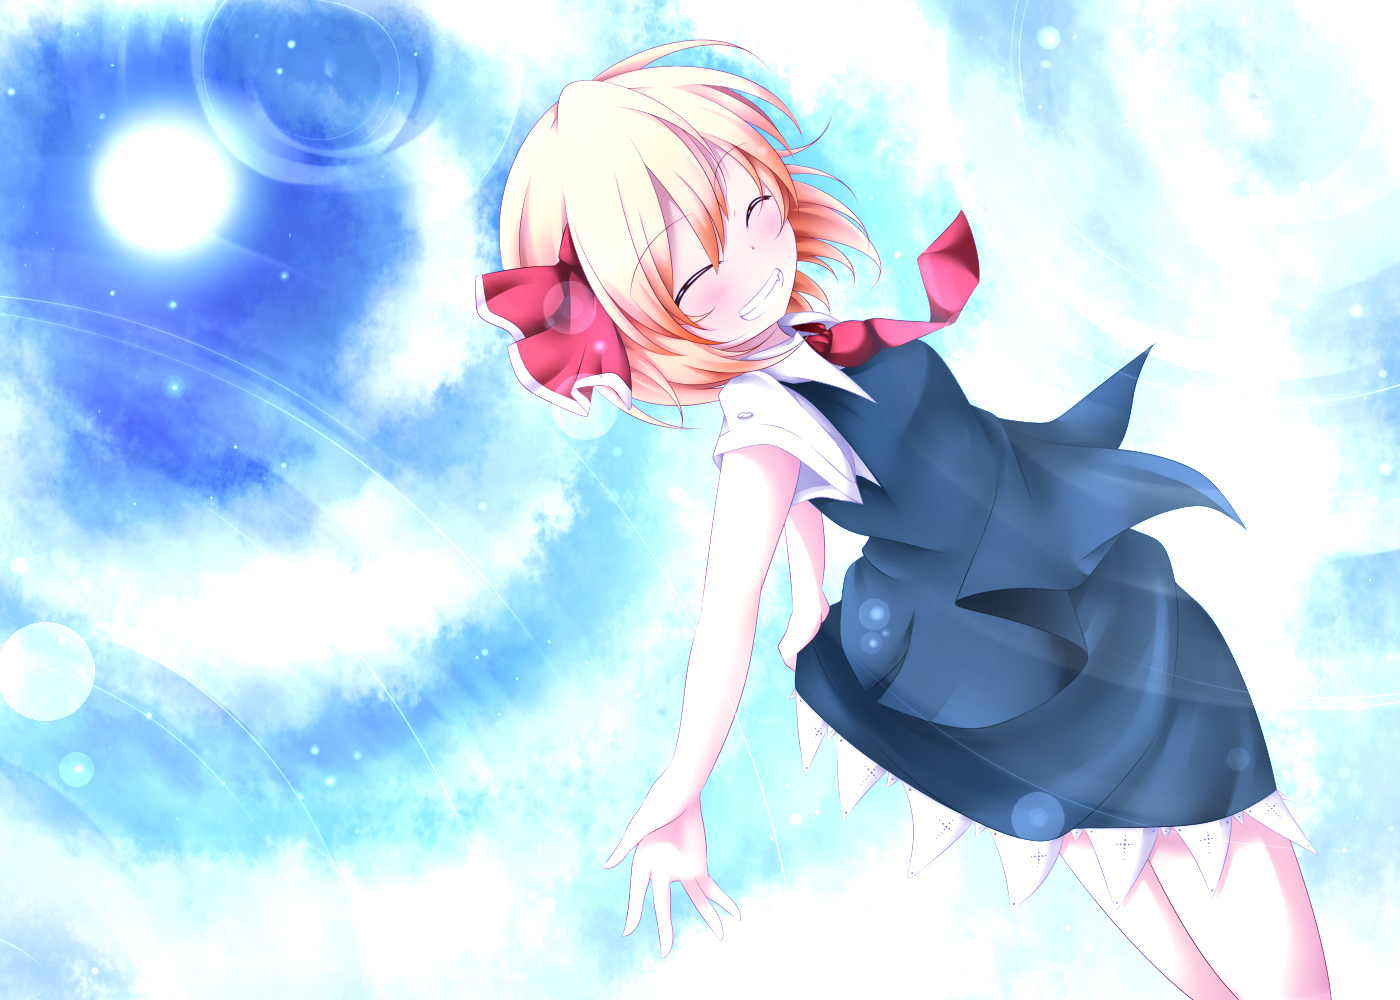 blonde_hair blush clouds kuroyume_(dark495) ribbons rumia short_hair skirt sky tie touhou